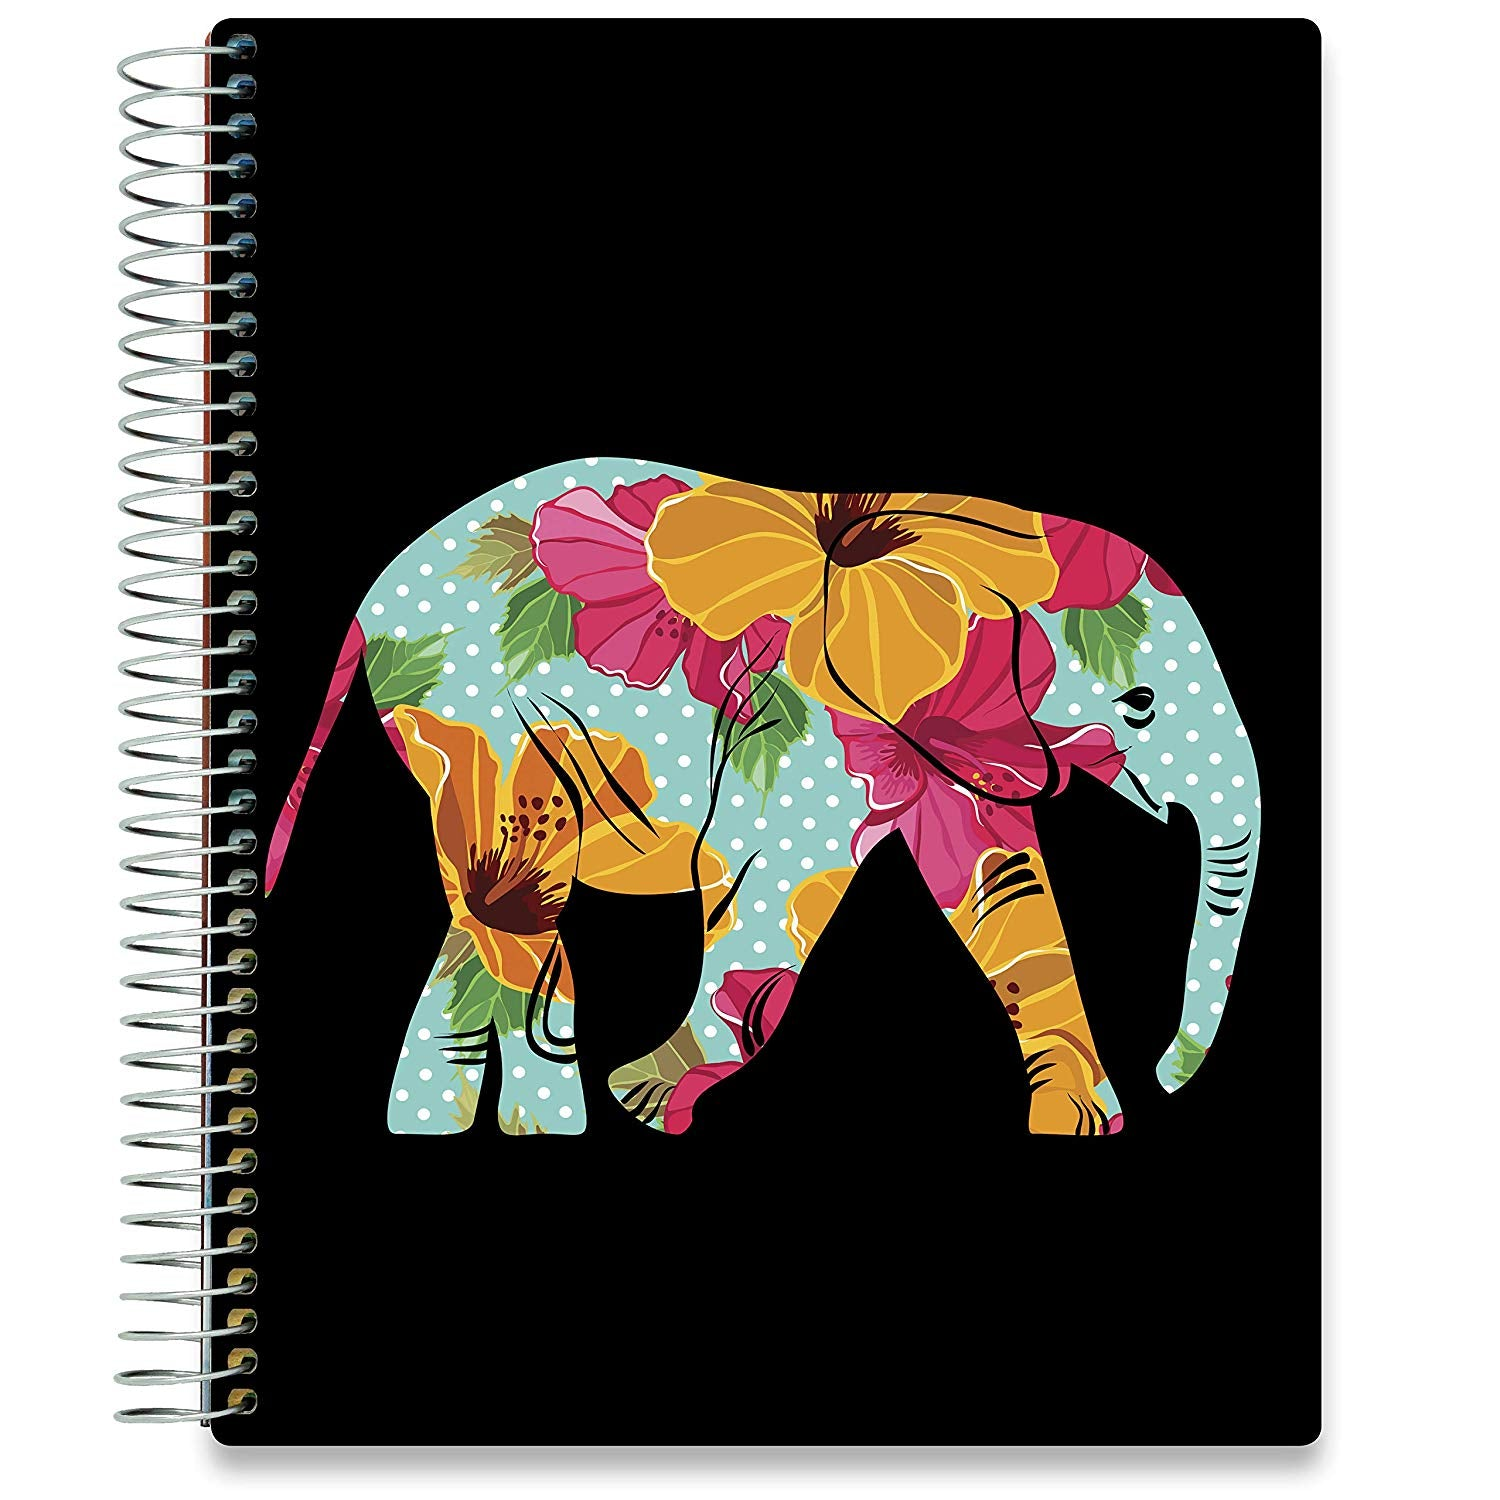 NEW: April 2020-2021 Planner - 8.5x11 - Floral Elephant-Office Product-Tools4Wisdom